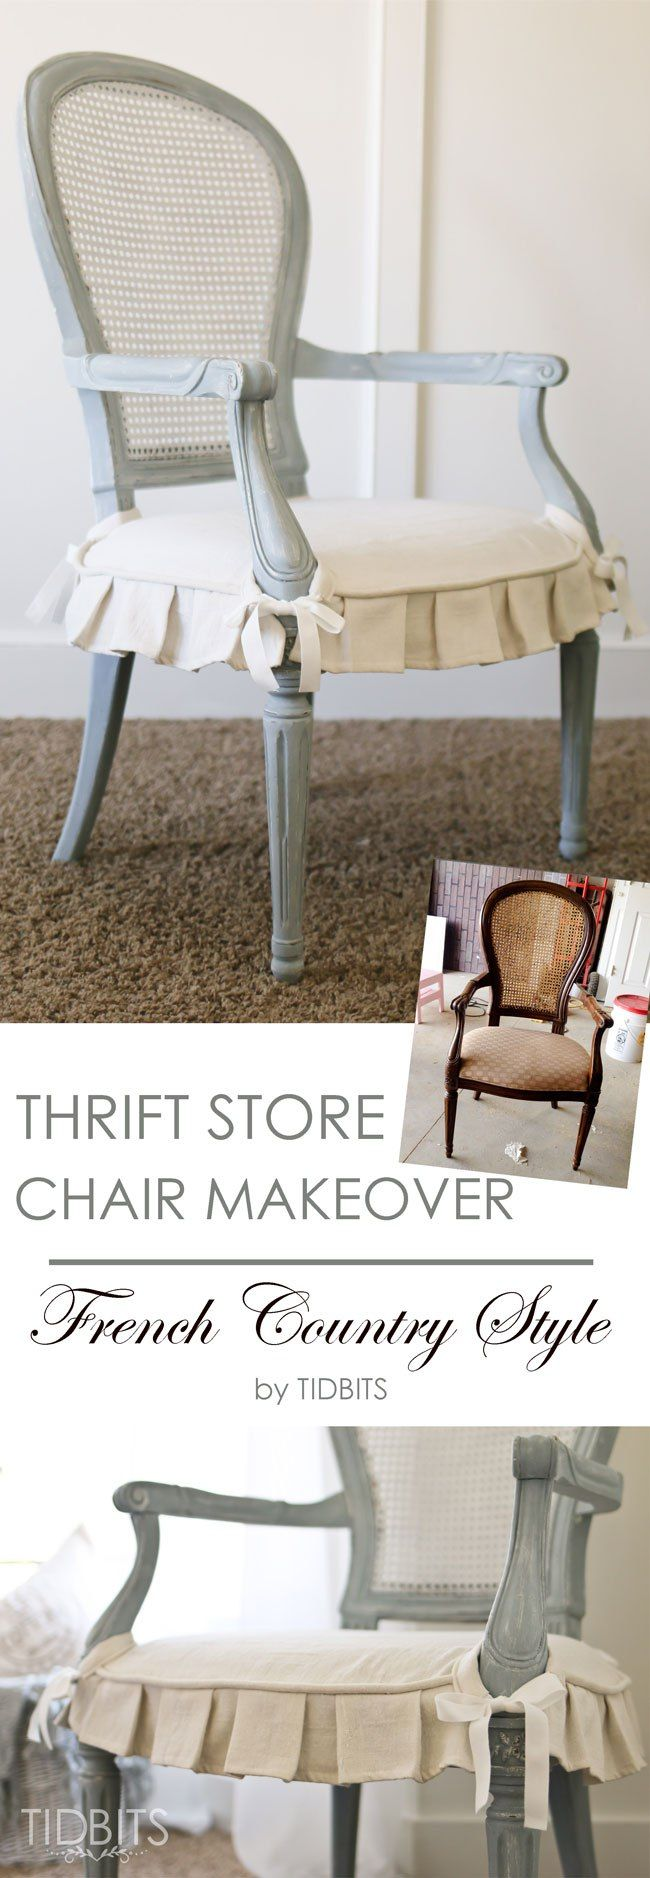 Thrift Chair Makeover French Country Style Tidbits